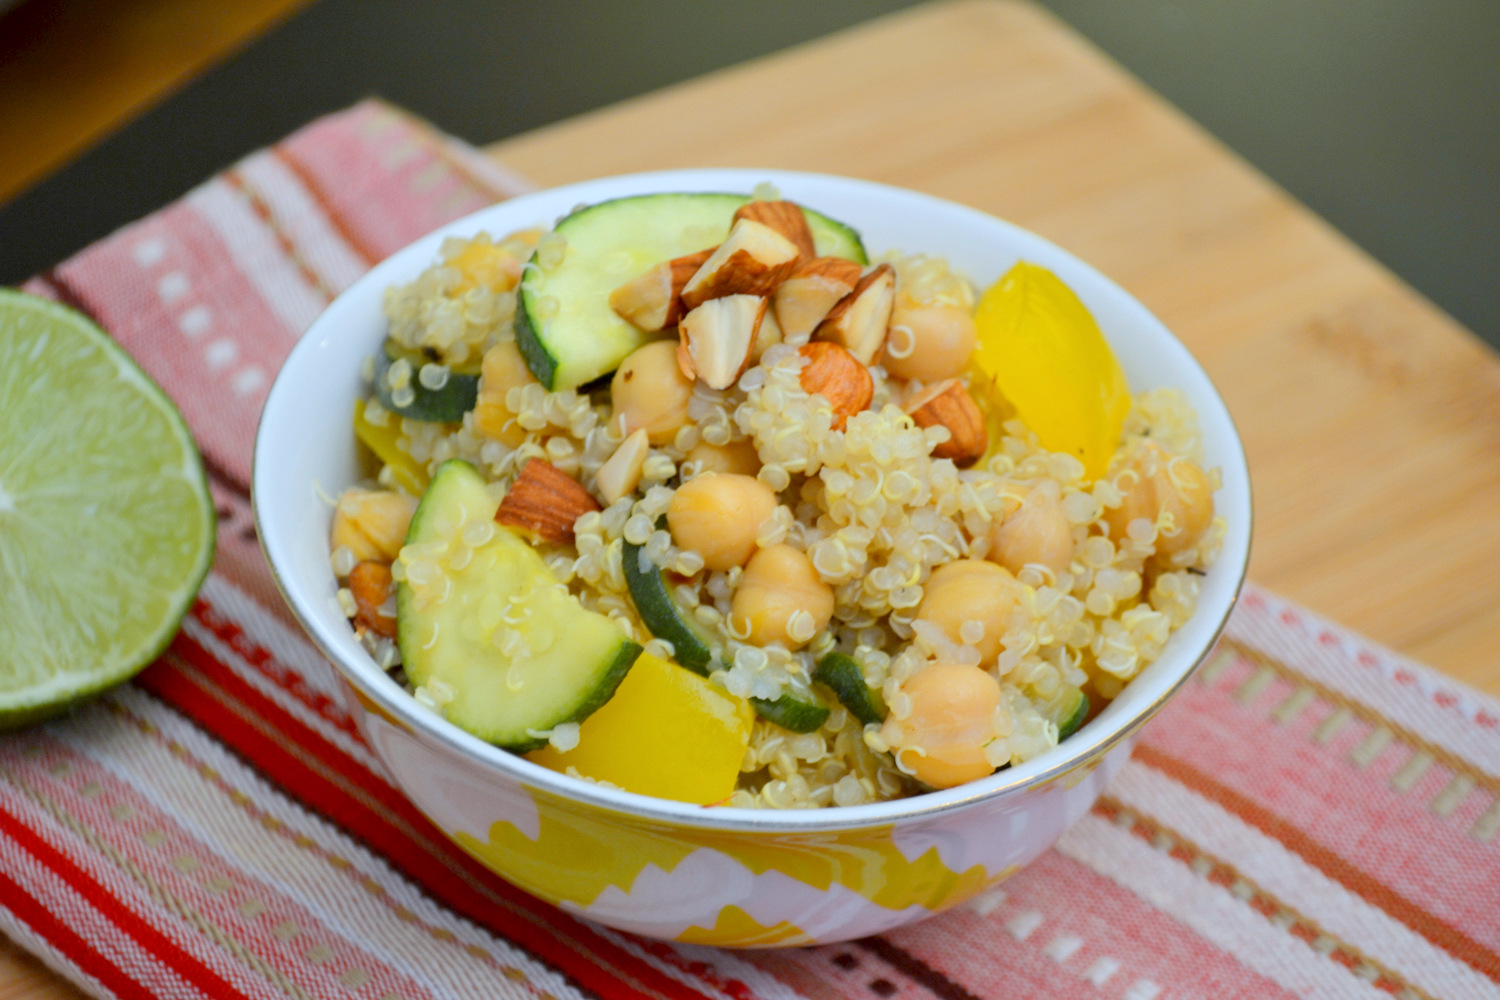 Test Kitchen: Quinoa Salad with Toasted Almonds